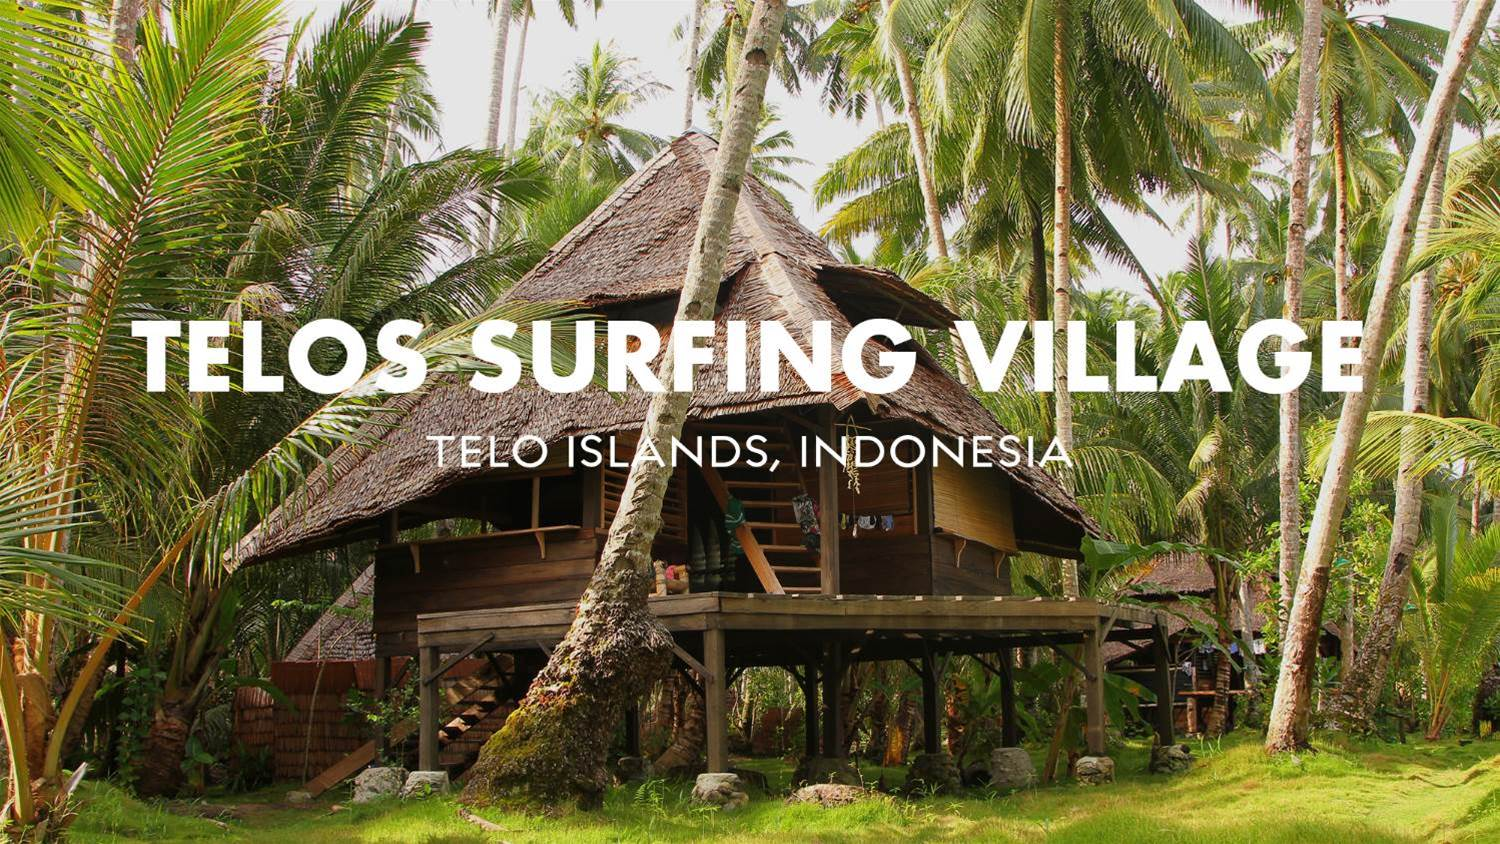 TELOS SURFING VILLAGE